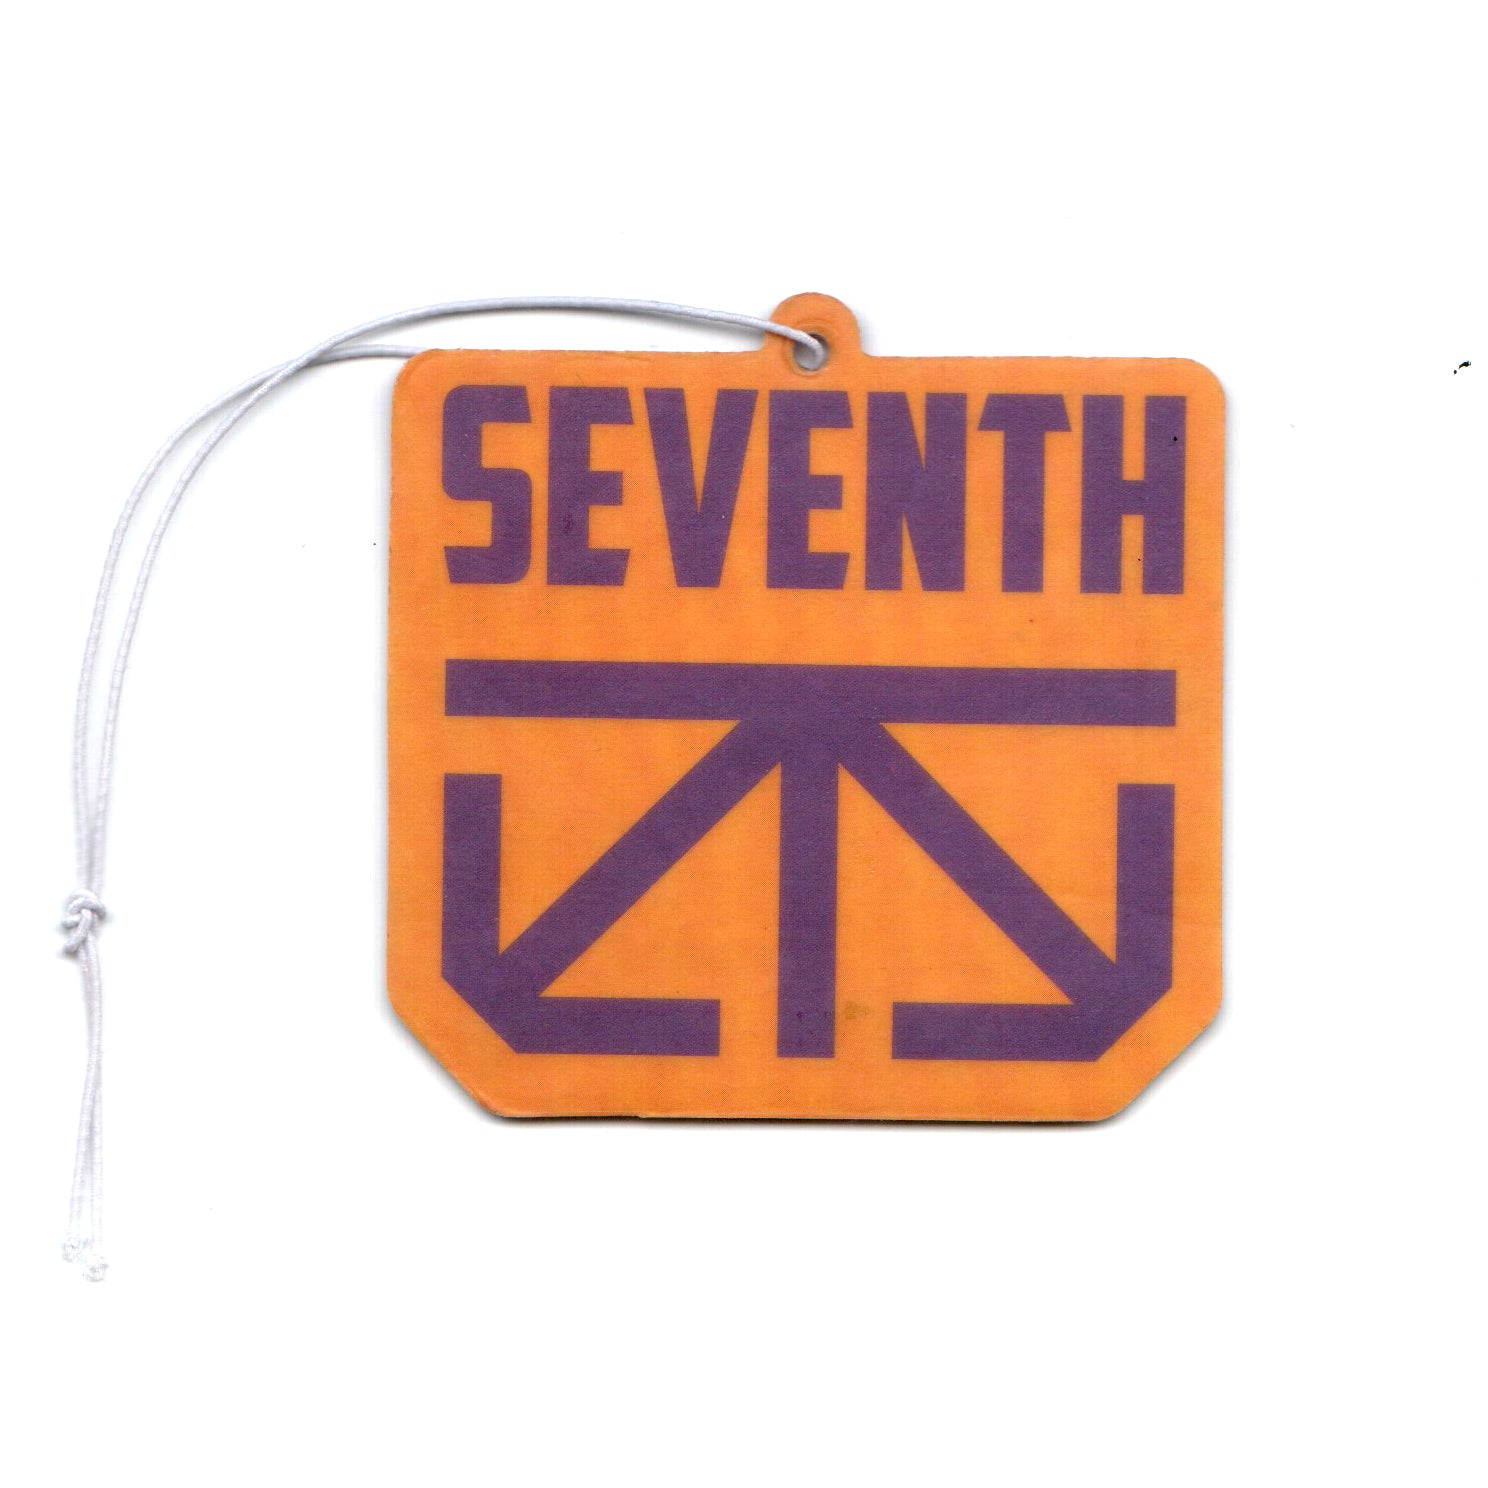 THE SEVENTH LETTER - SEVENTH